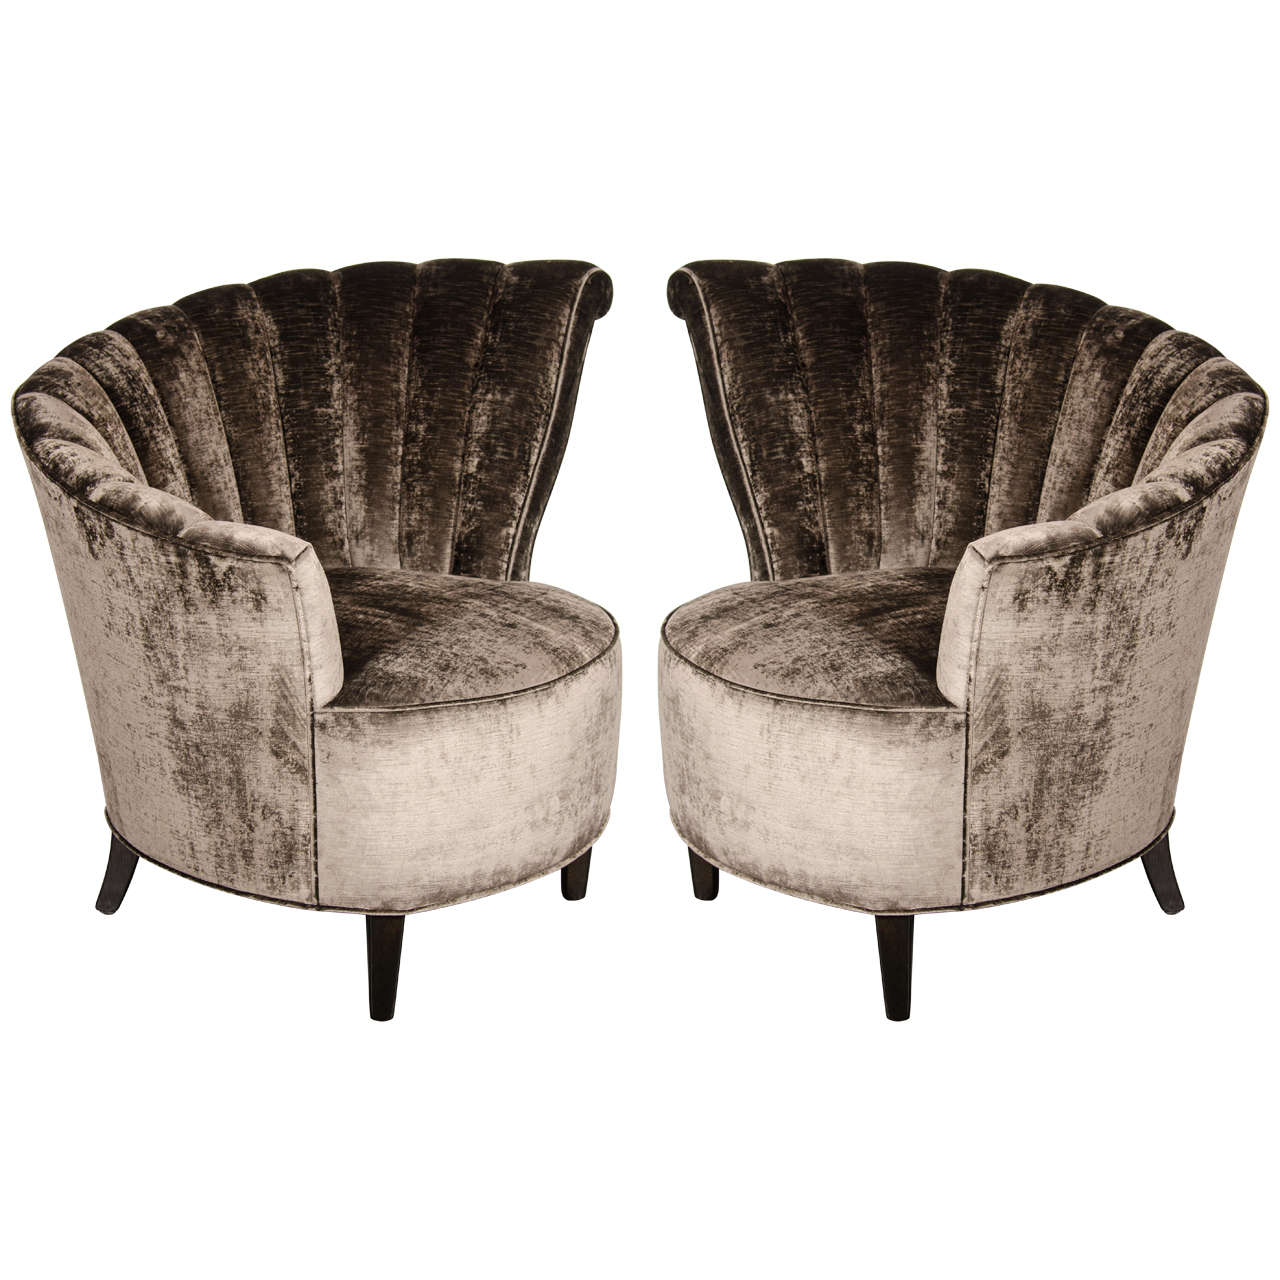 Fan Back Chair Glamorous Pair Of 1940 39s Asymmetrical Fan Back Chairs In